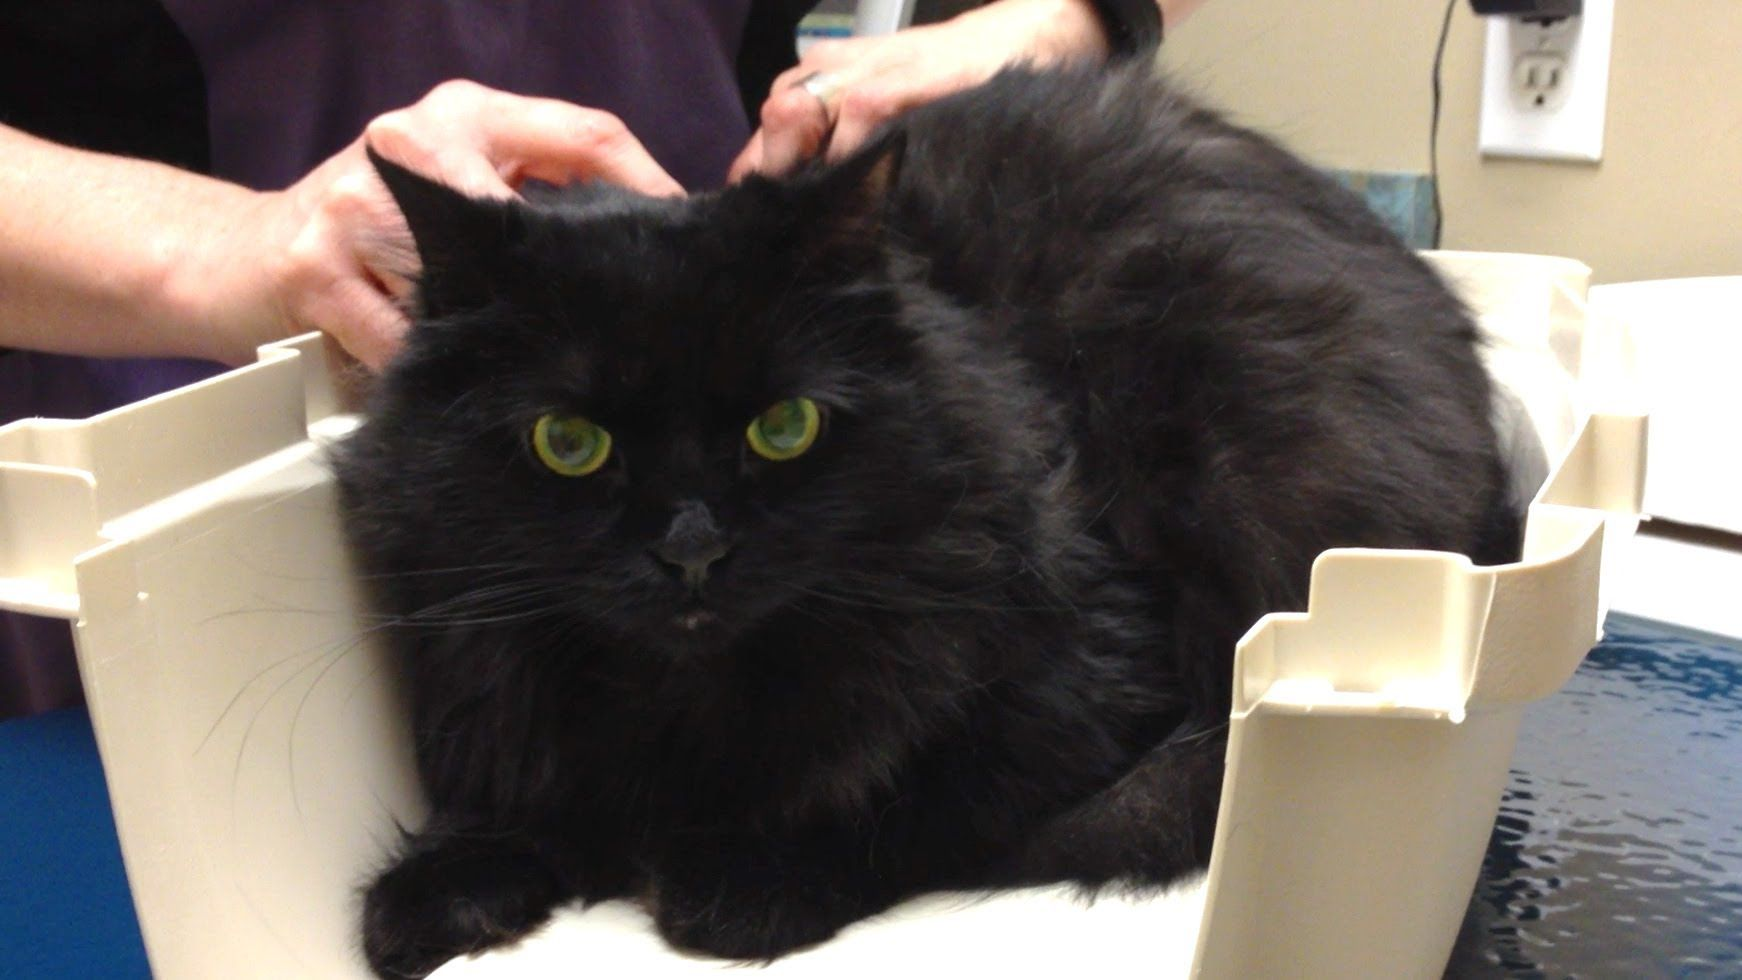 ShoKo at the Vet! Cats and kittens, Cat gif, Pet care